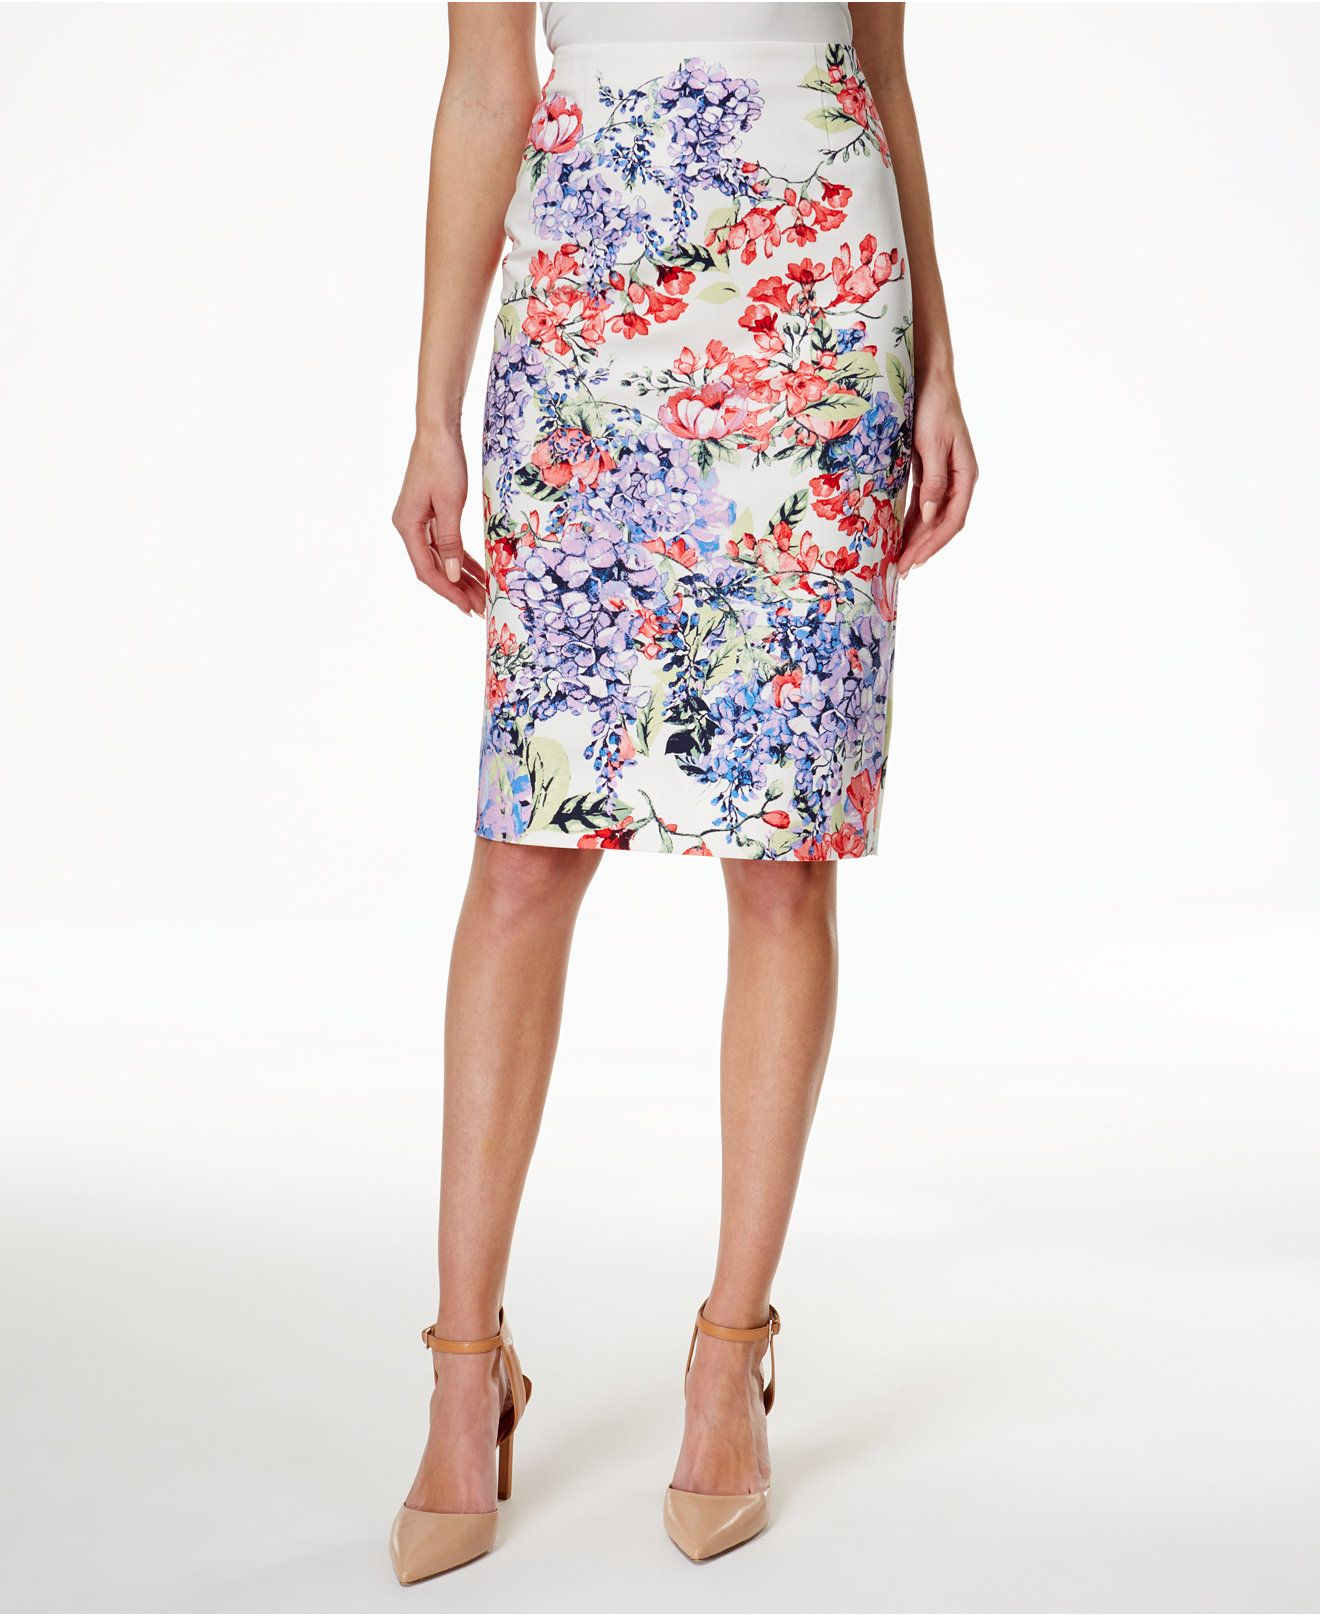 1024e3e28 Charter Club Petite Floral-Print Pencil Skirt, Only at Macy's - Skirts -  Women - Macy's